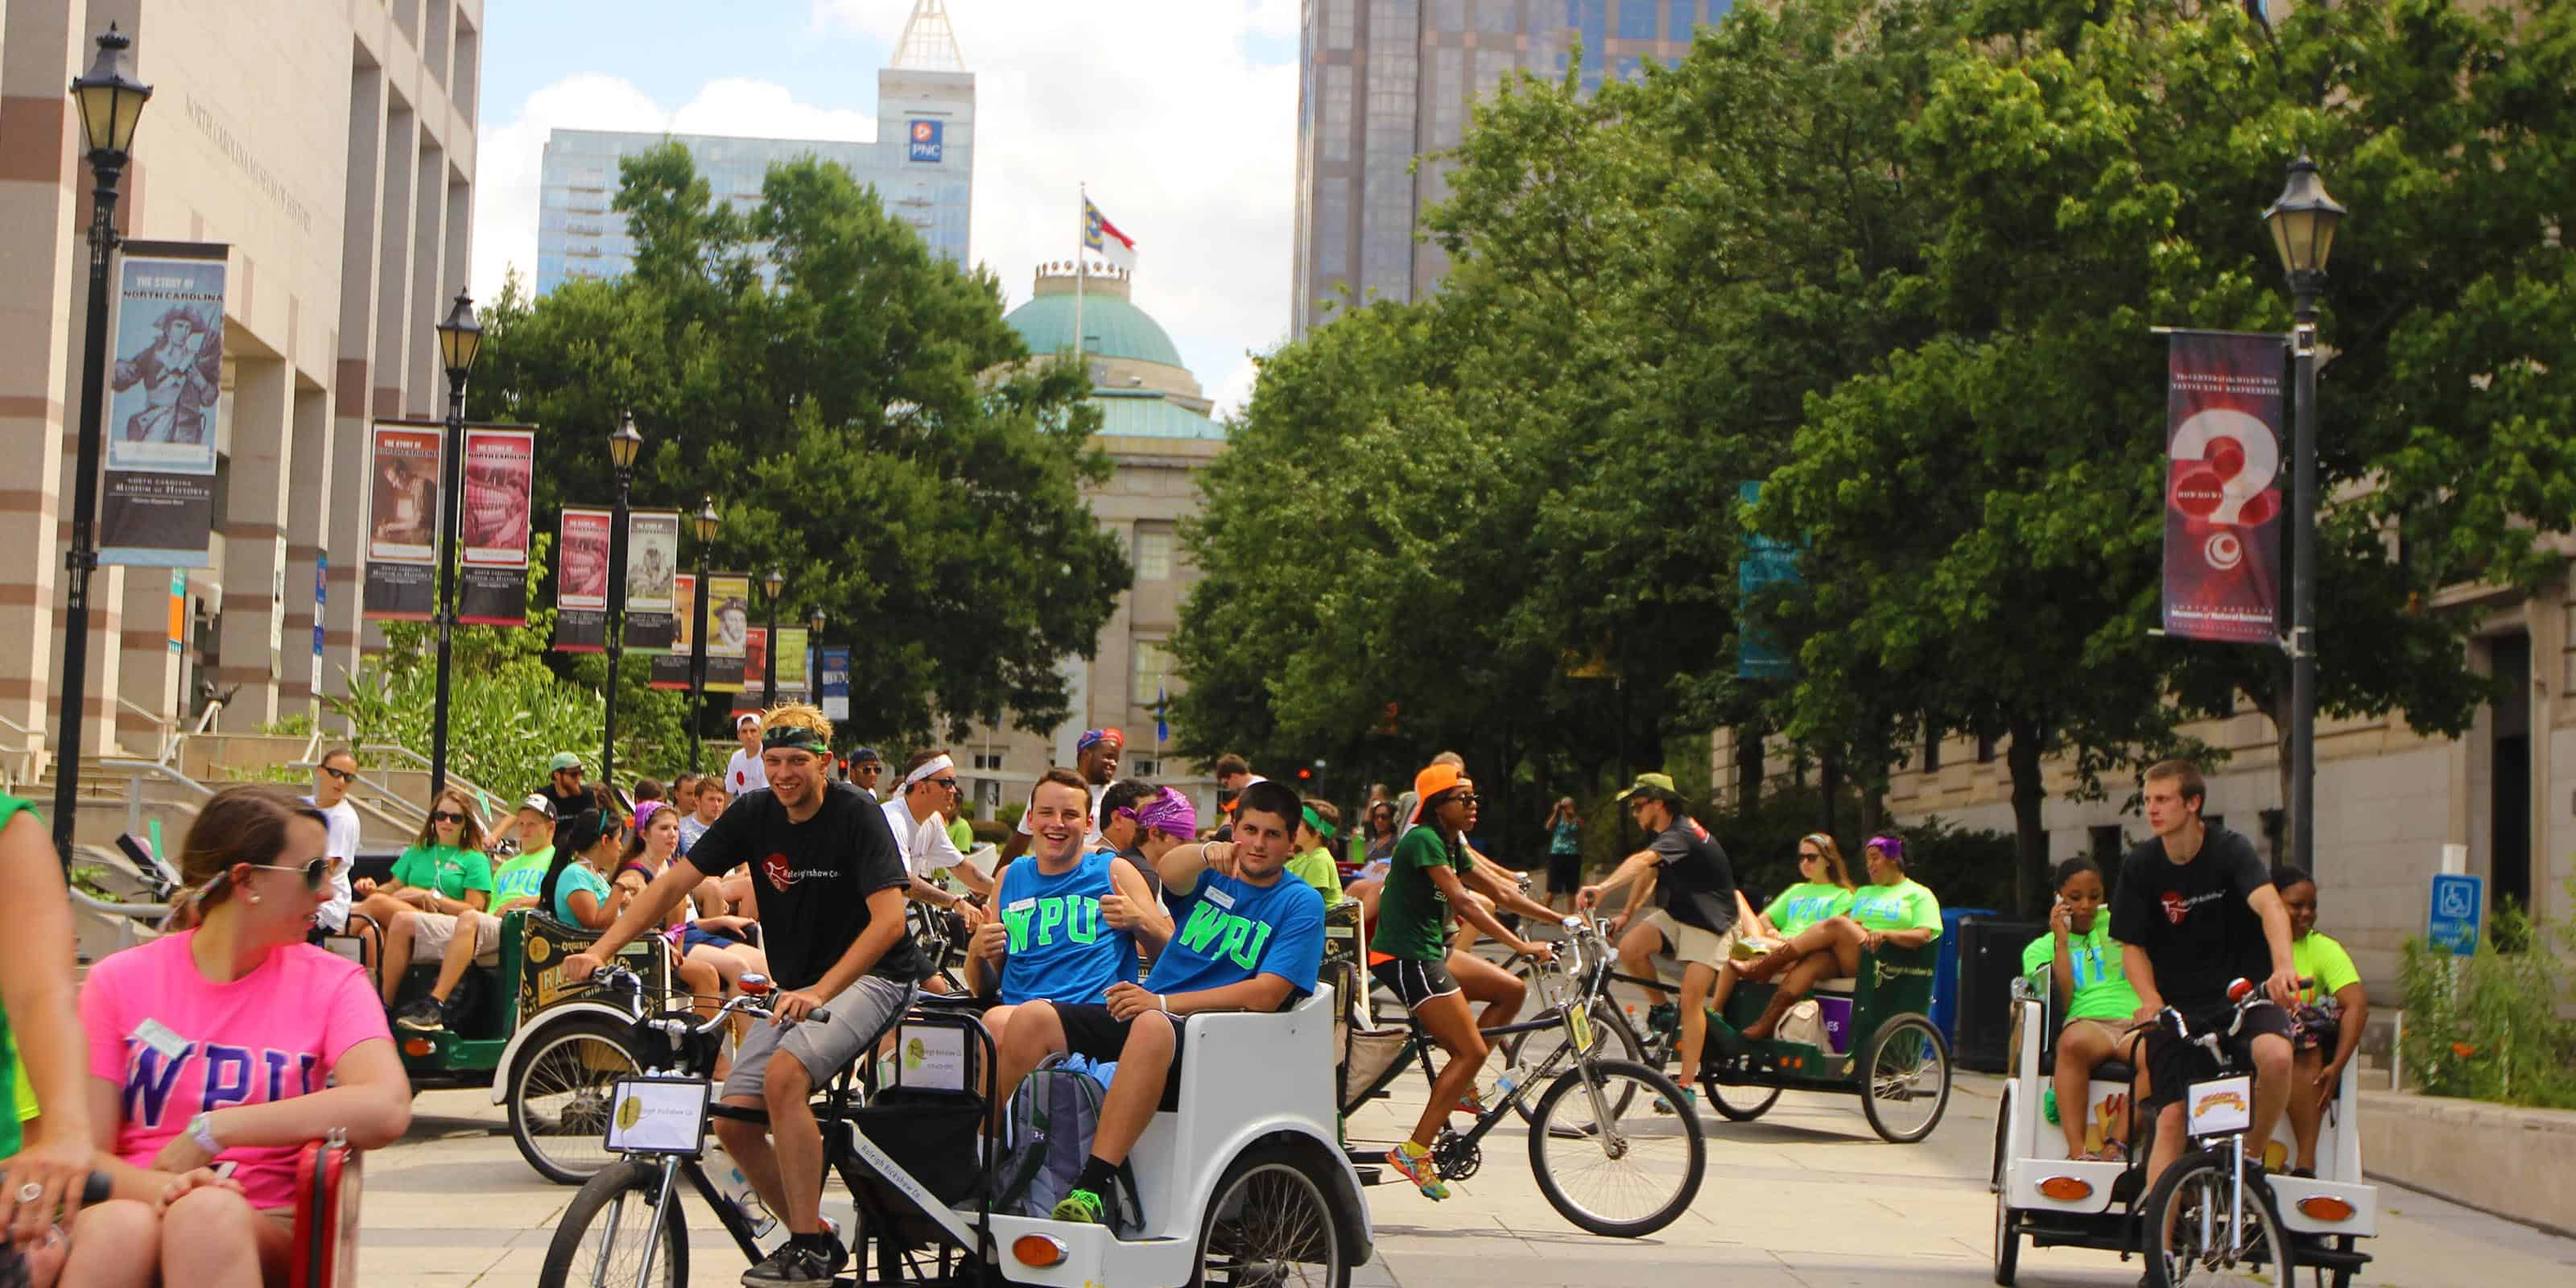 WPU students riding a rickshaw in Downtown Raleigh.